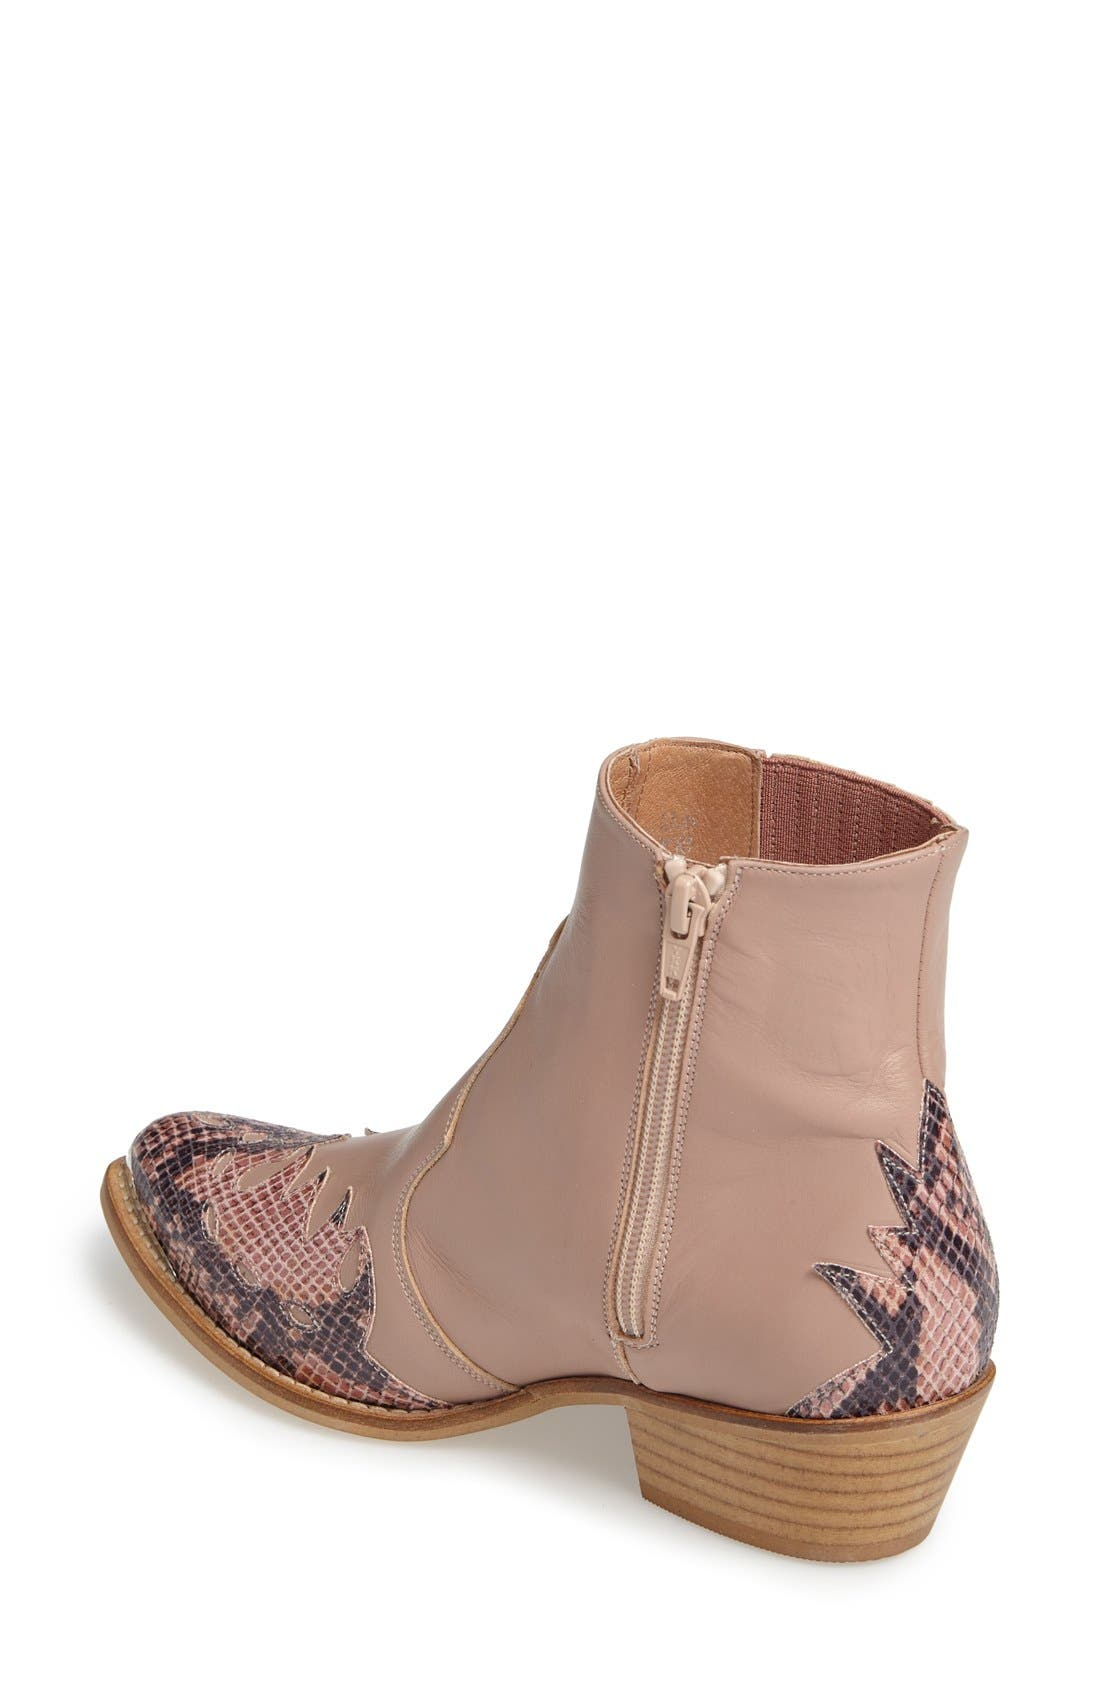 Alternate Image 2  - Topshop 'Arson' Western Ankle Boots (Women)